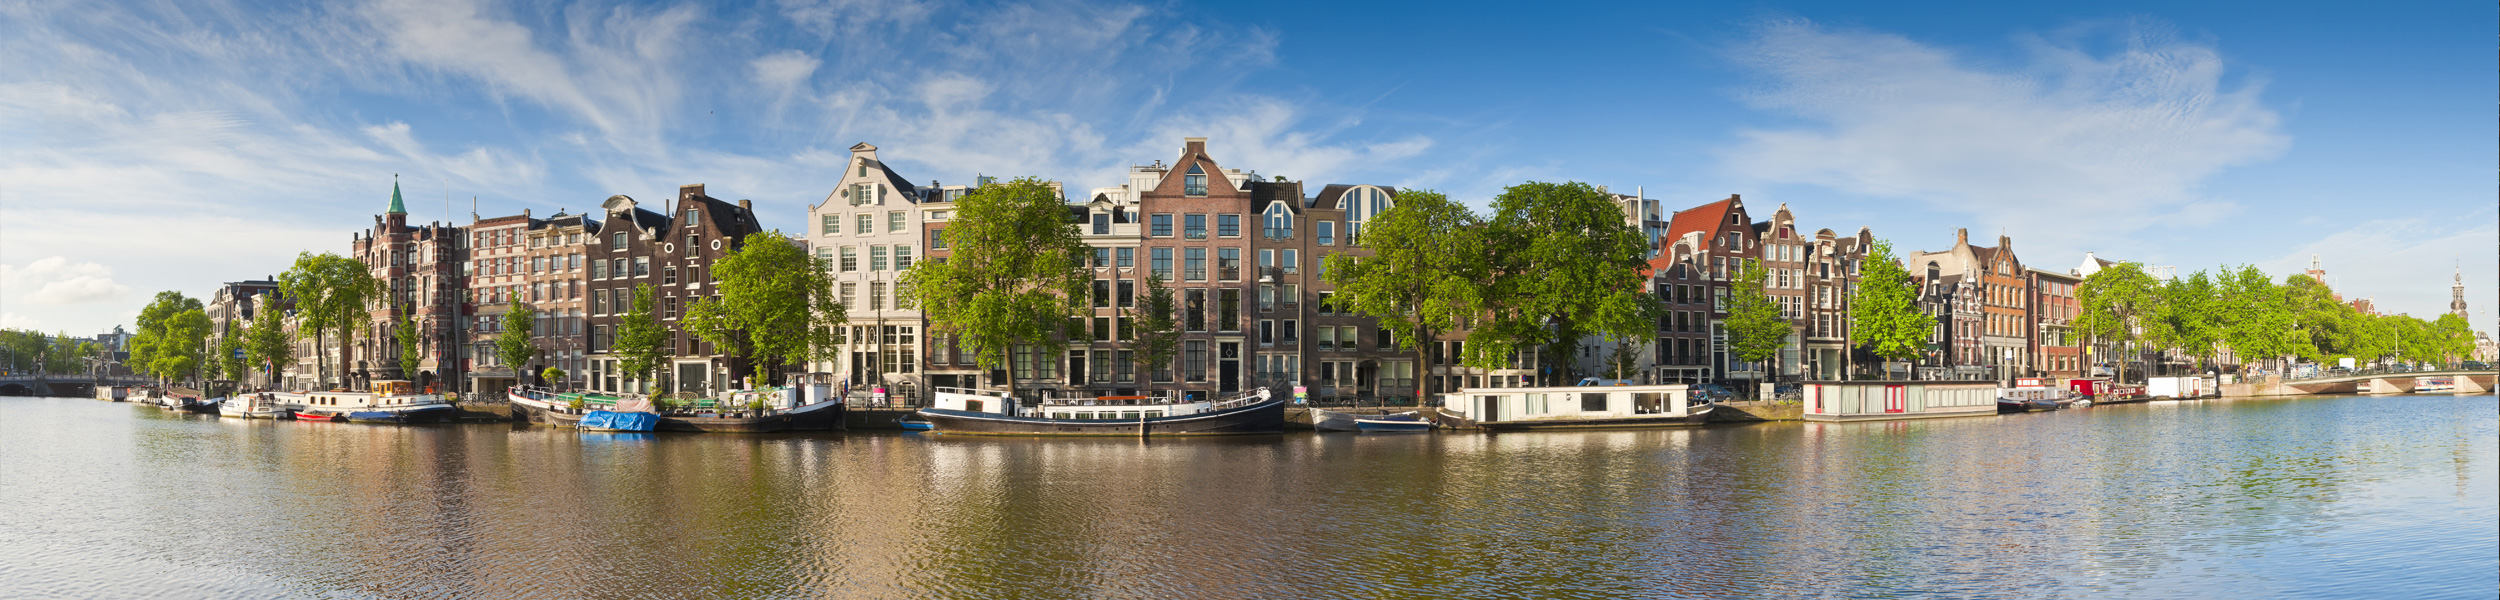 Fullstack .NET Engineer Amsterdam, the Netherlands